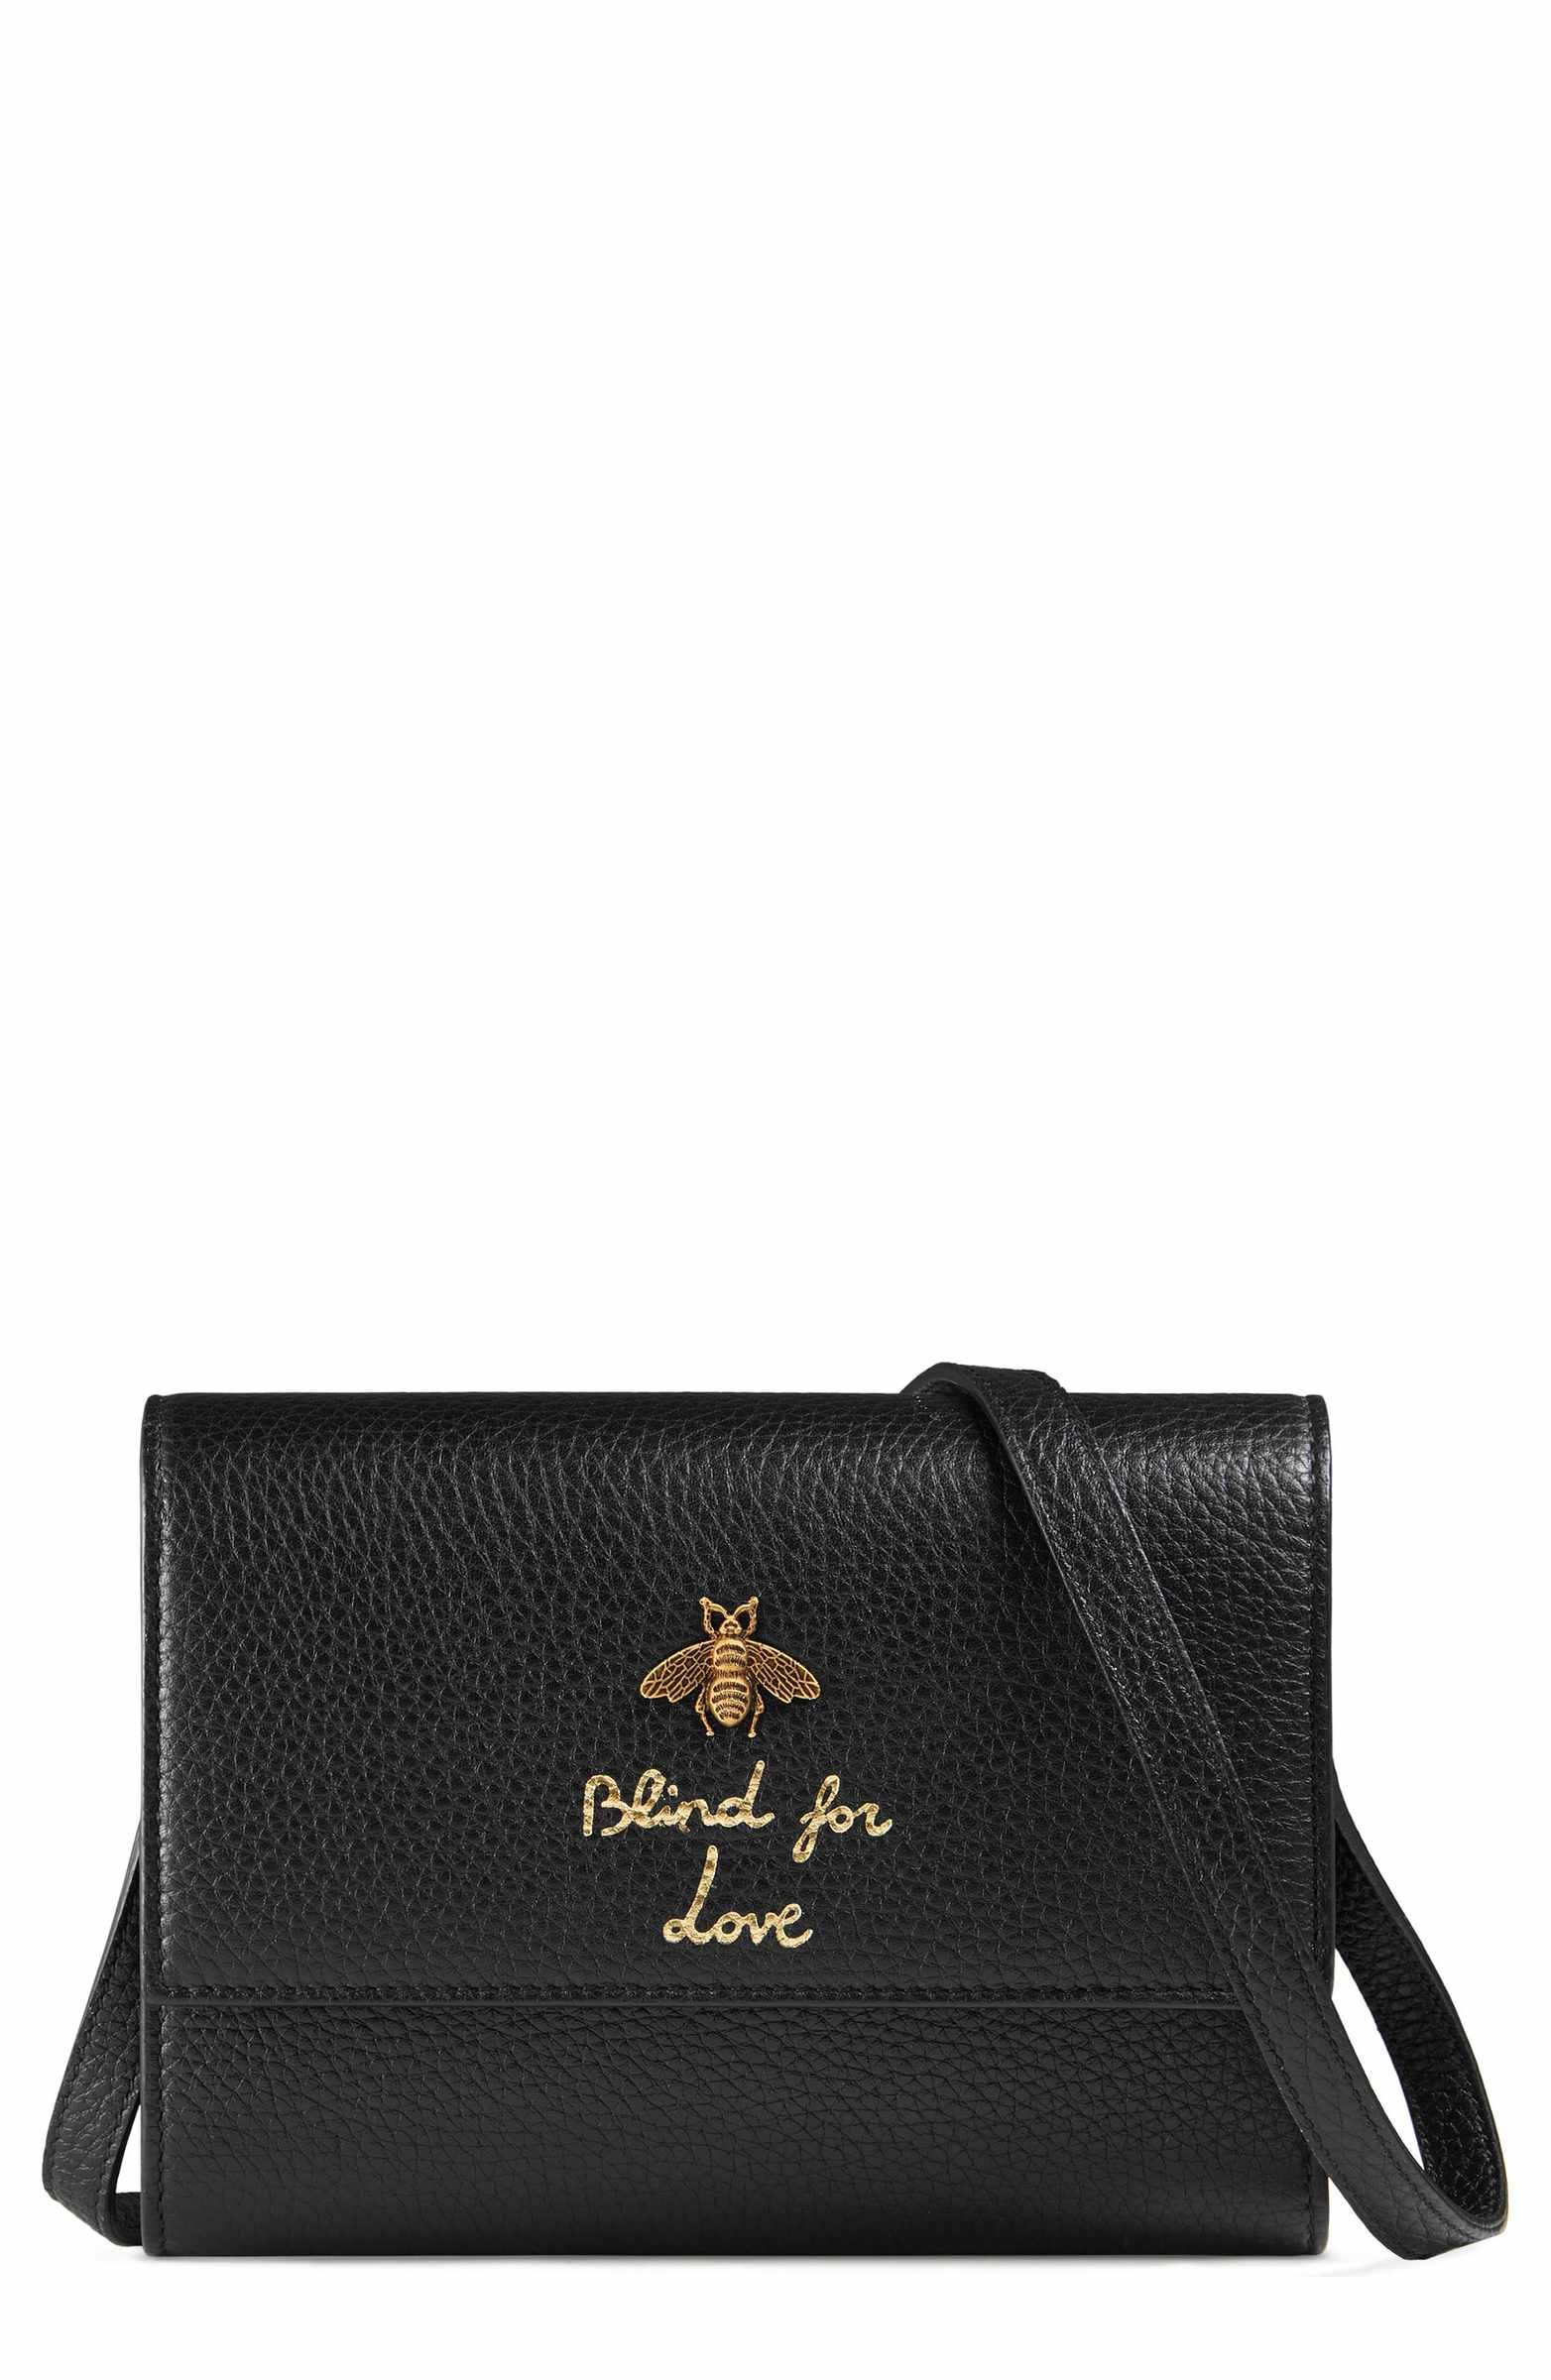 61b6ba3fc22e Main Image - Gucci Animalier Bee Leather Wallet | bag stuffs in 2019 ...